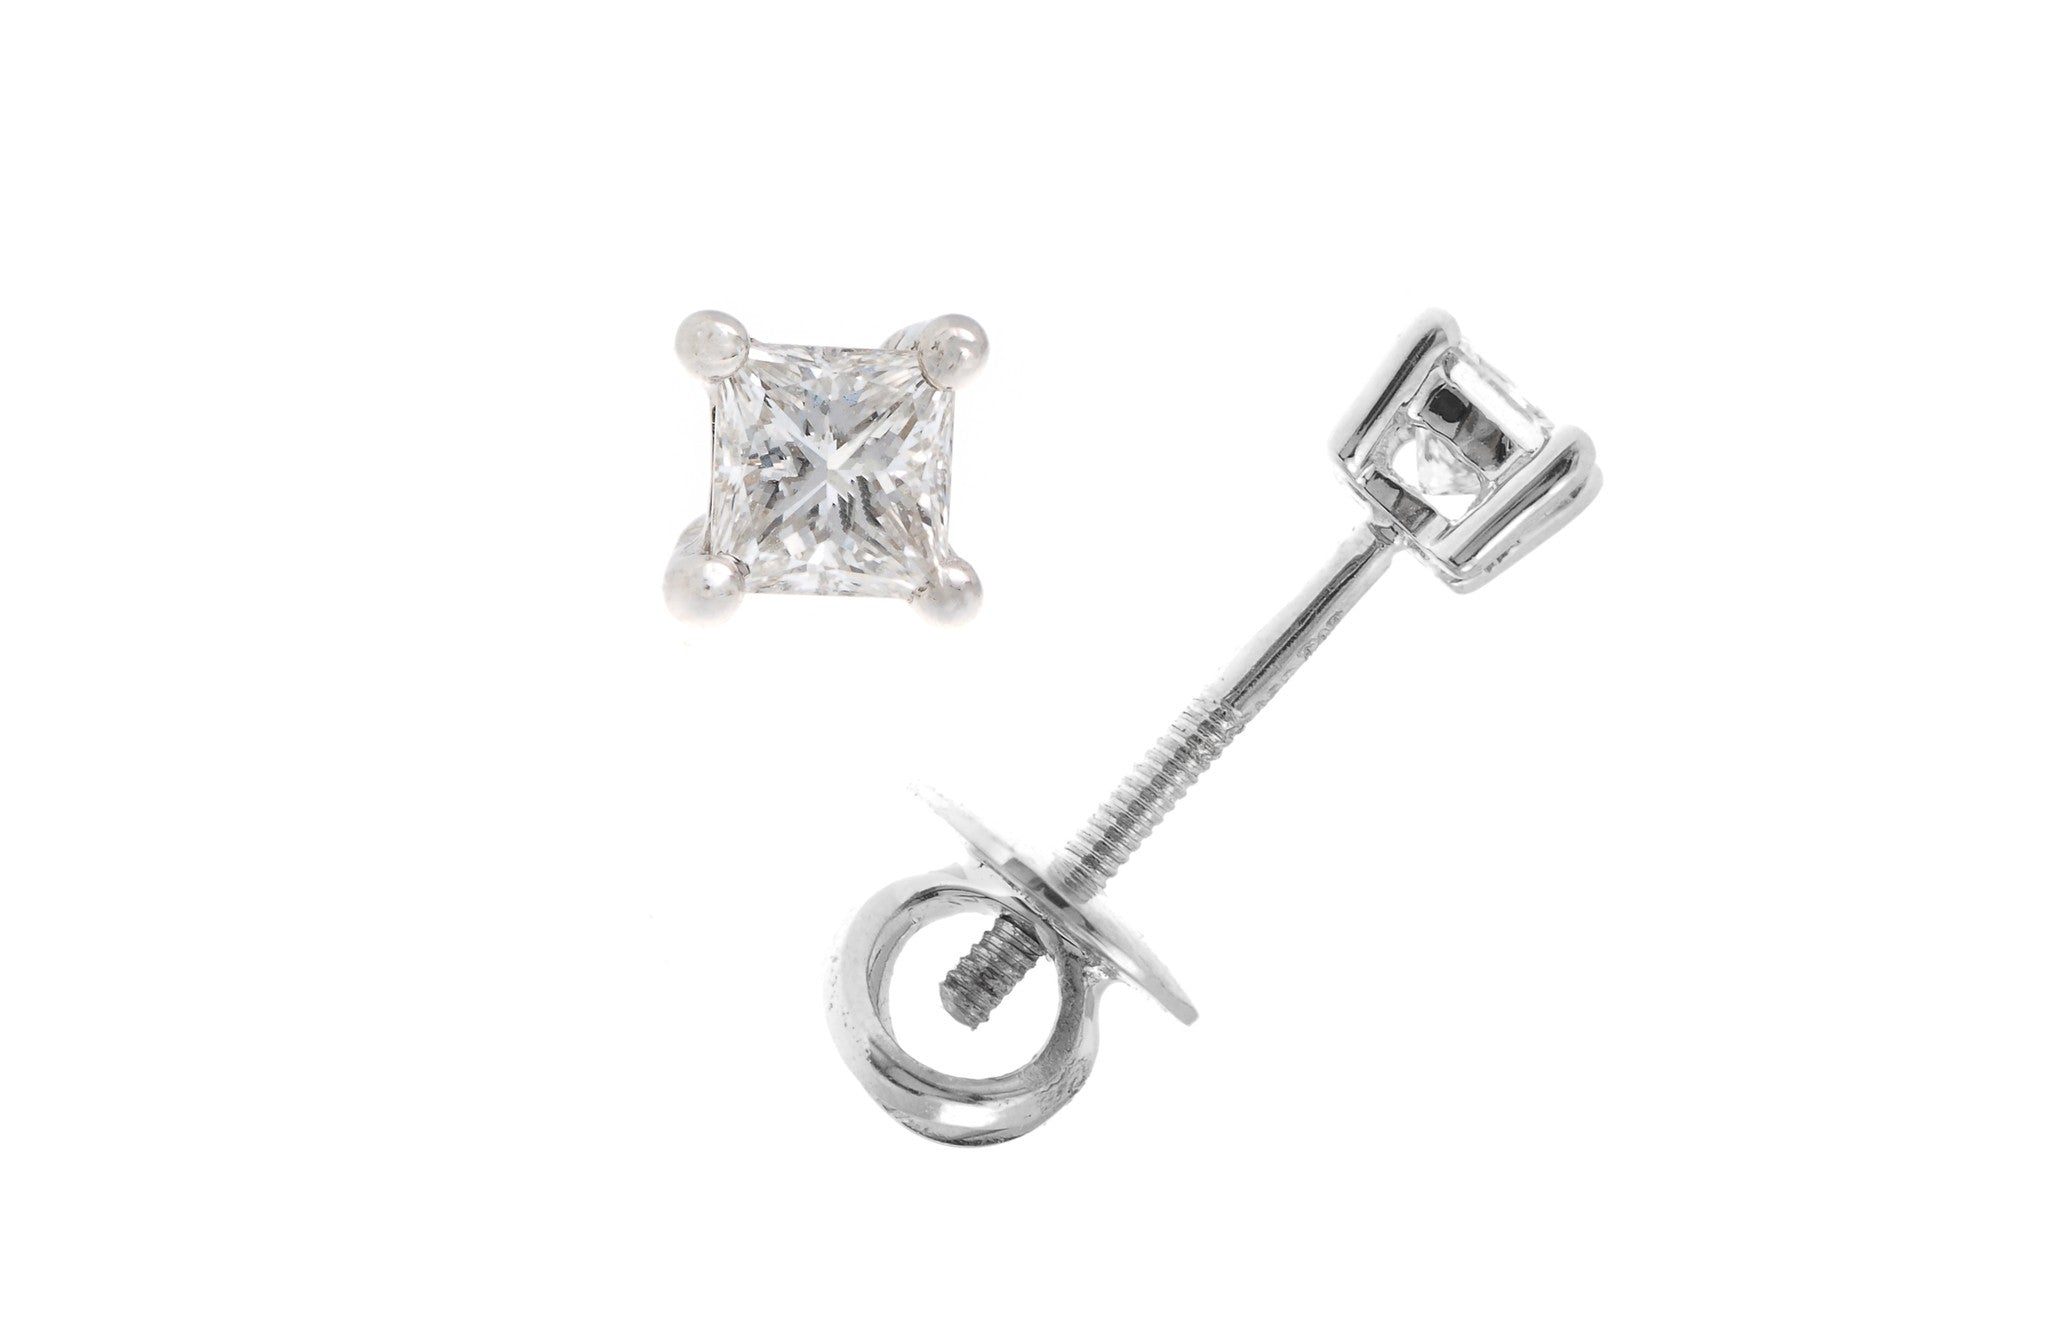 18ct White Gold 0.31ct Princess Cut Diamond Stud Earrings (MCS2276)